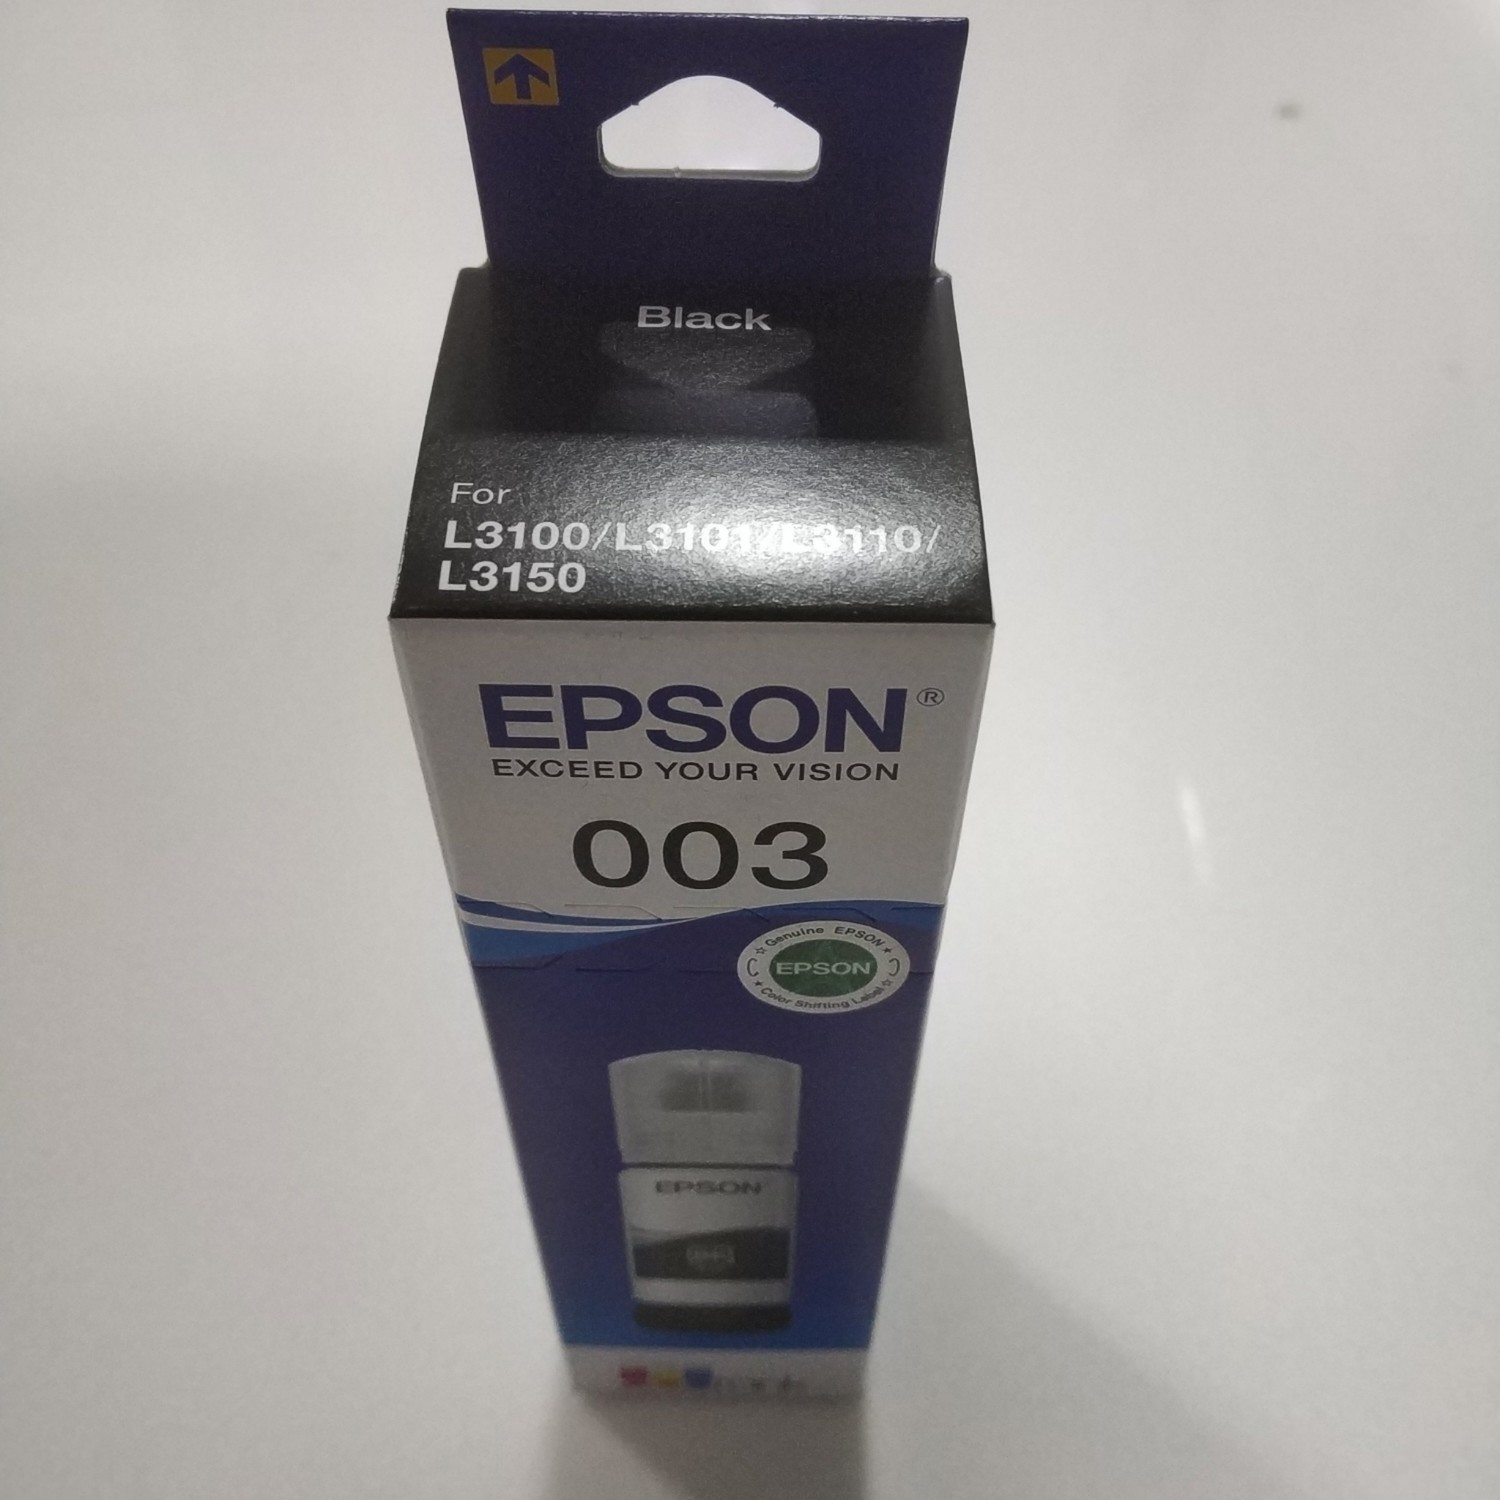 Epson Ink Bottle, 003, Black, 65ml, Rs 242